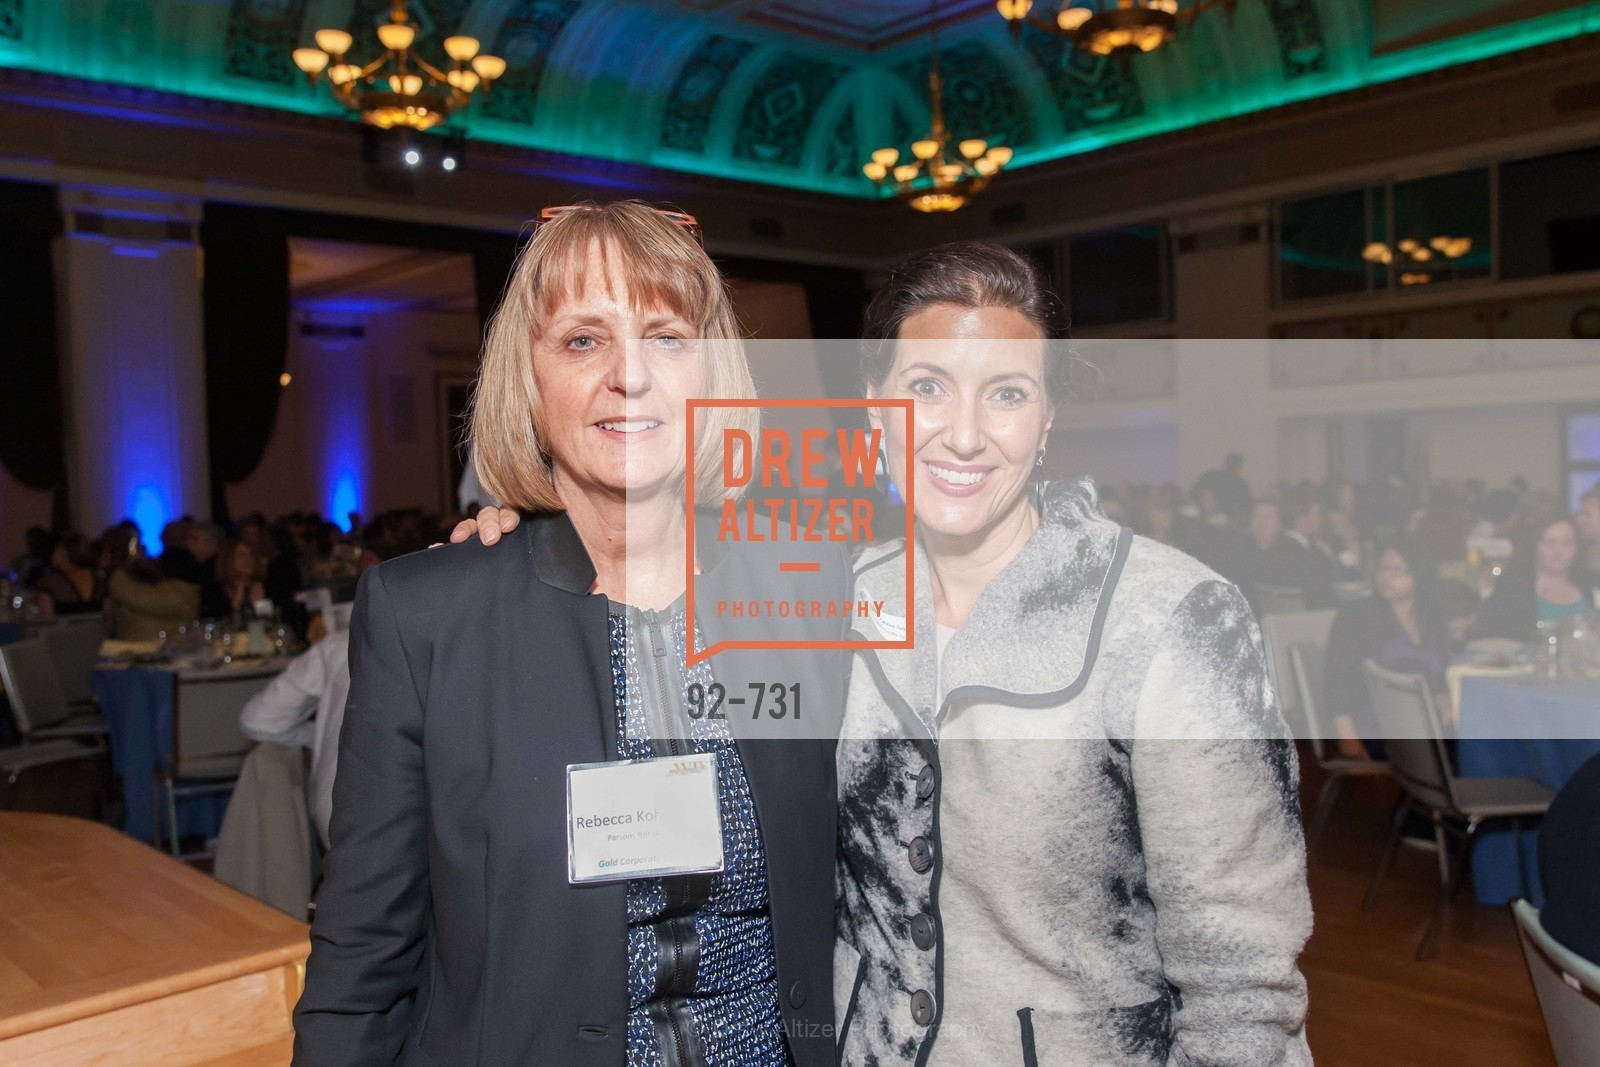 Rebecca Kohlstrand, Libby Schaaf, WOMEN'S TRANSPORTATION SEMINAR SF Bay Area Chapter Annual Scholarship Awards, US, May 15th, 2015,Drew Altizer, Drew Altizer Photography, full-service agency, private events, San Francisco photographer, photographer california